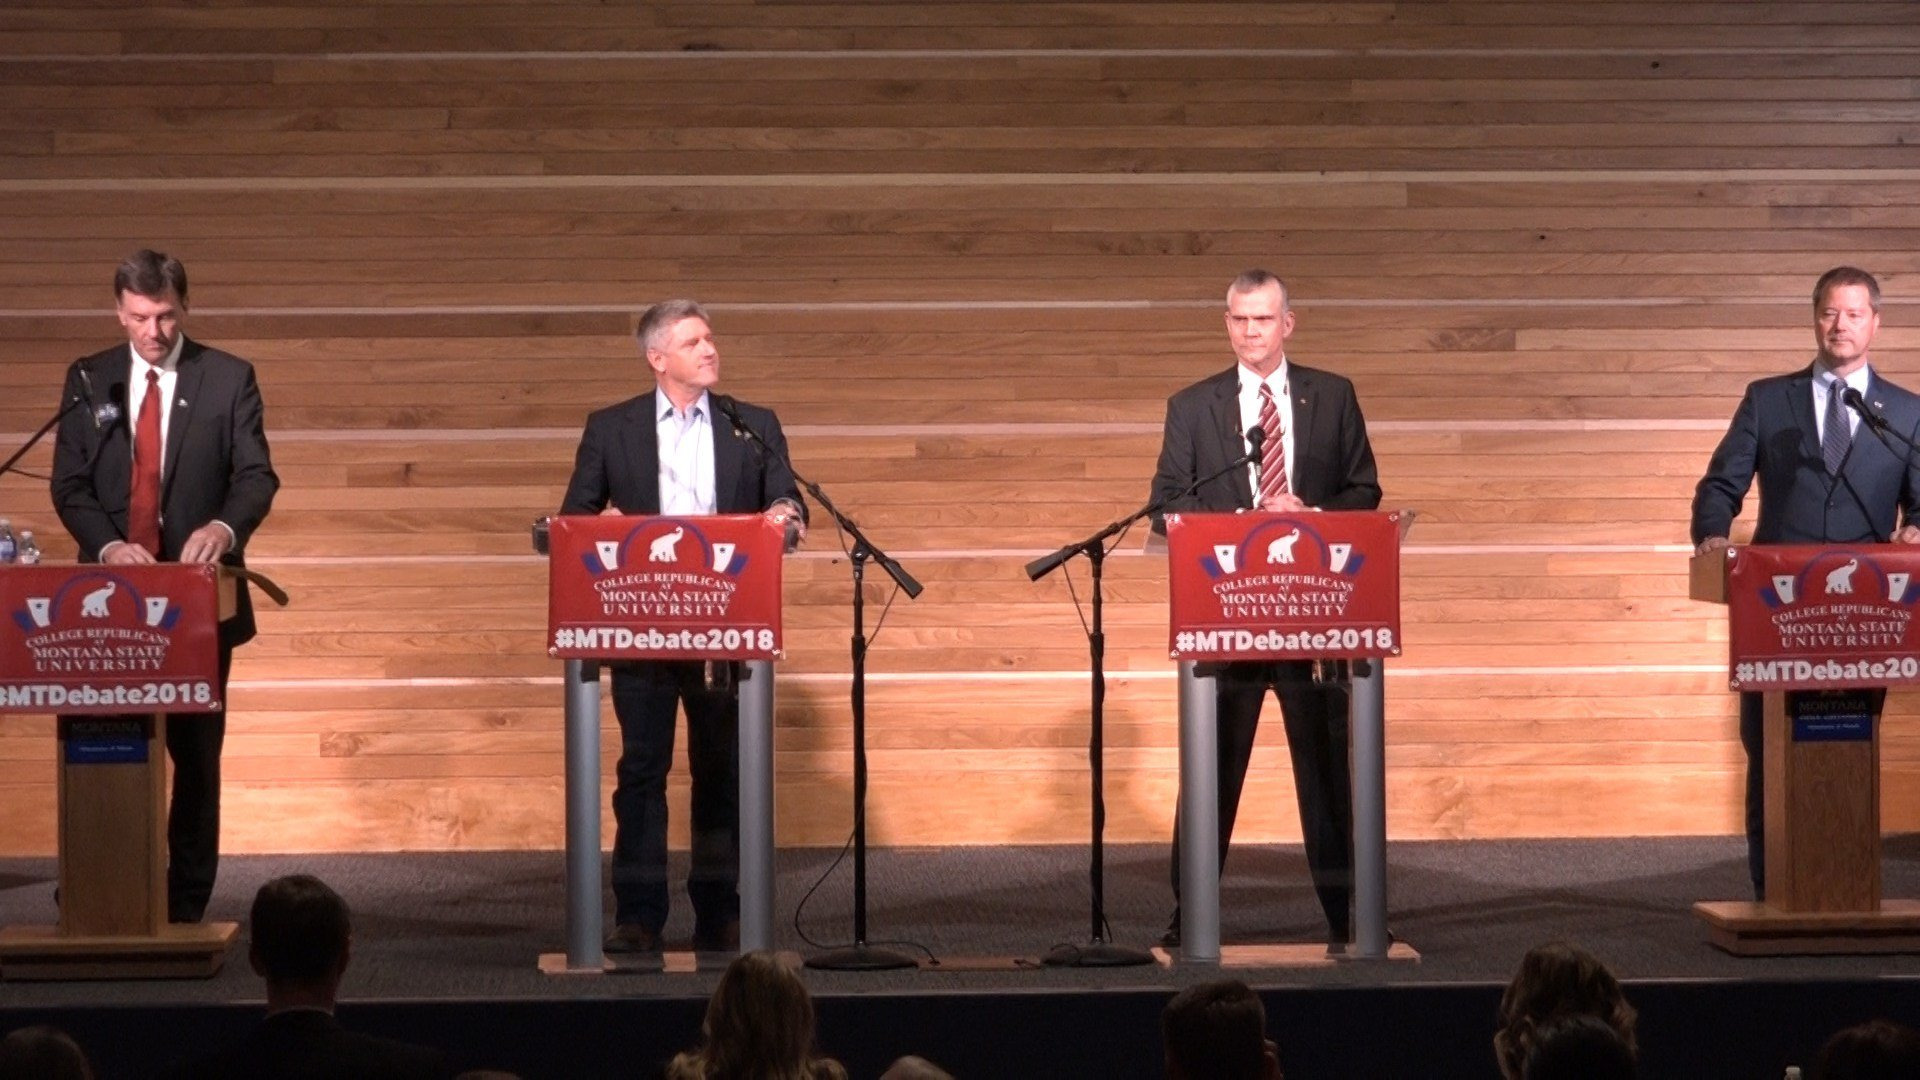 The four GOP Senate hopefuls at MSU debate